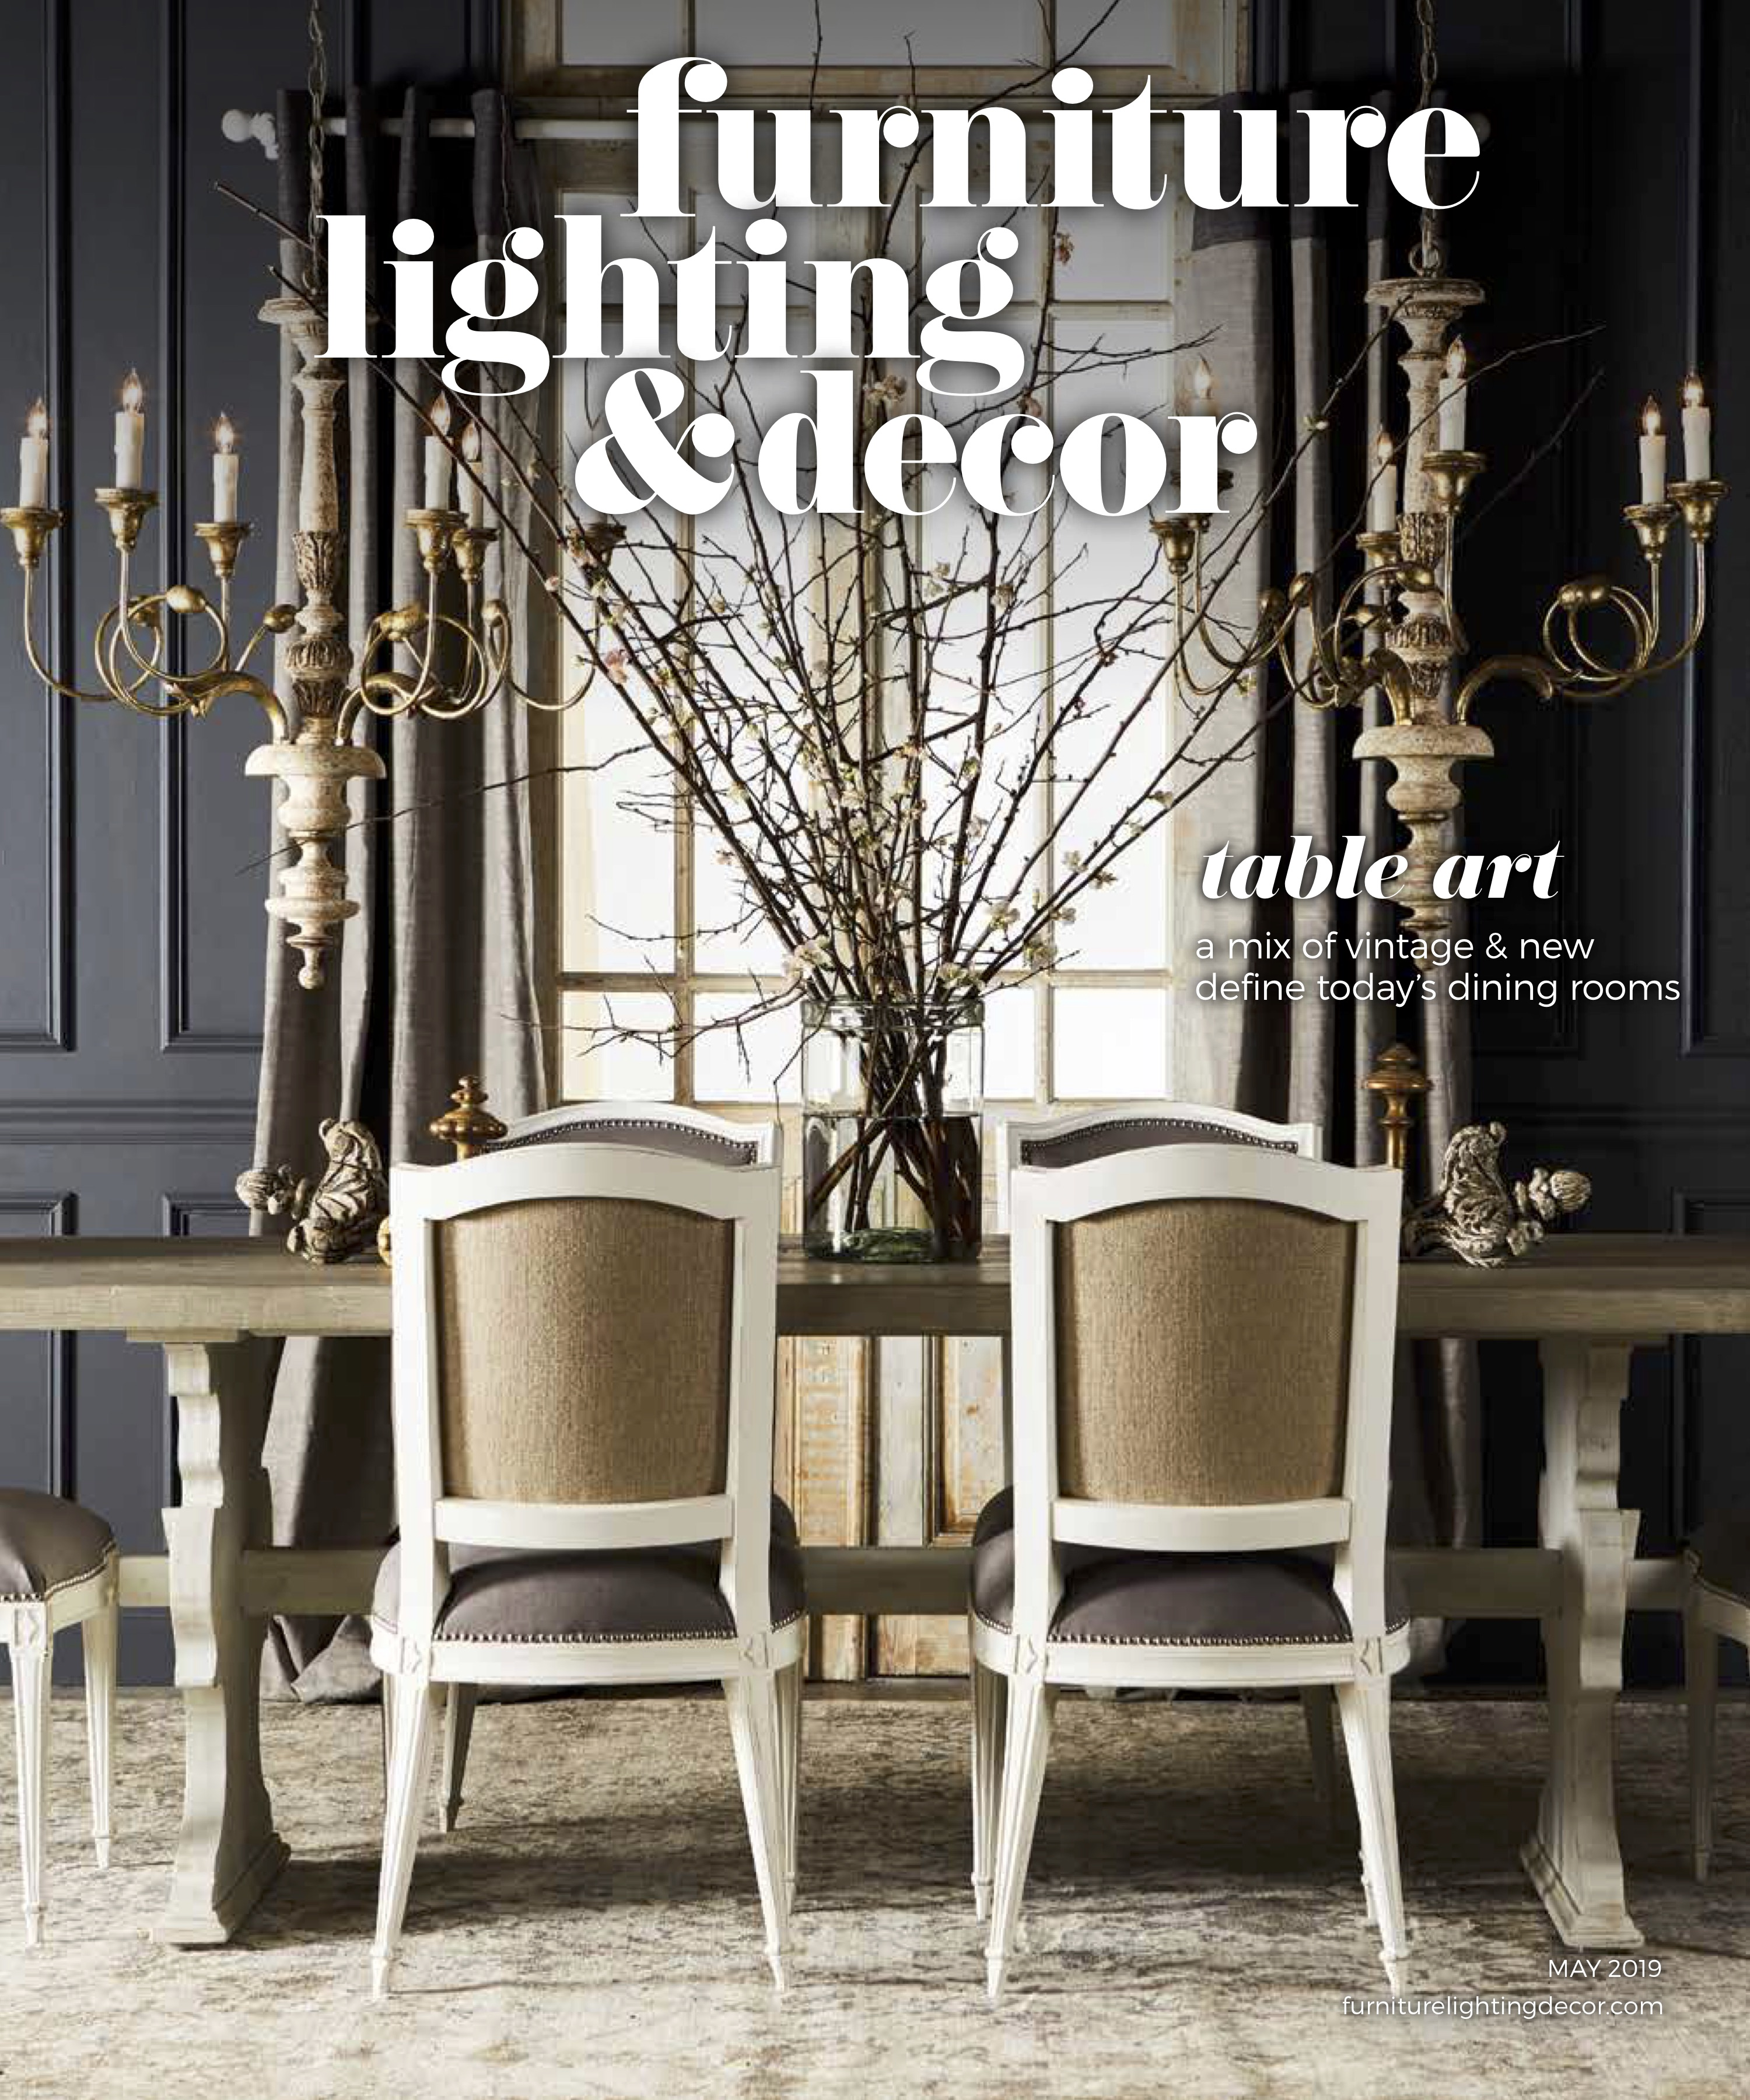 Archive Furniture Lighting Decor